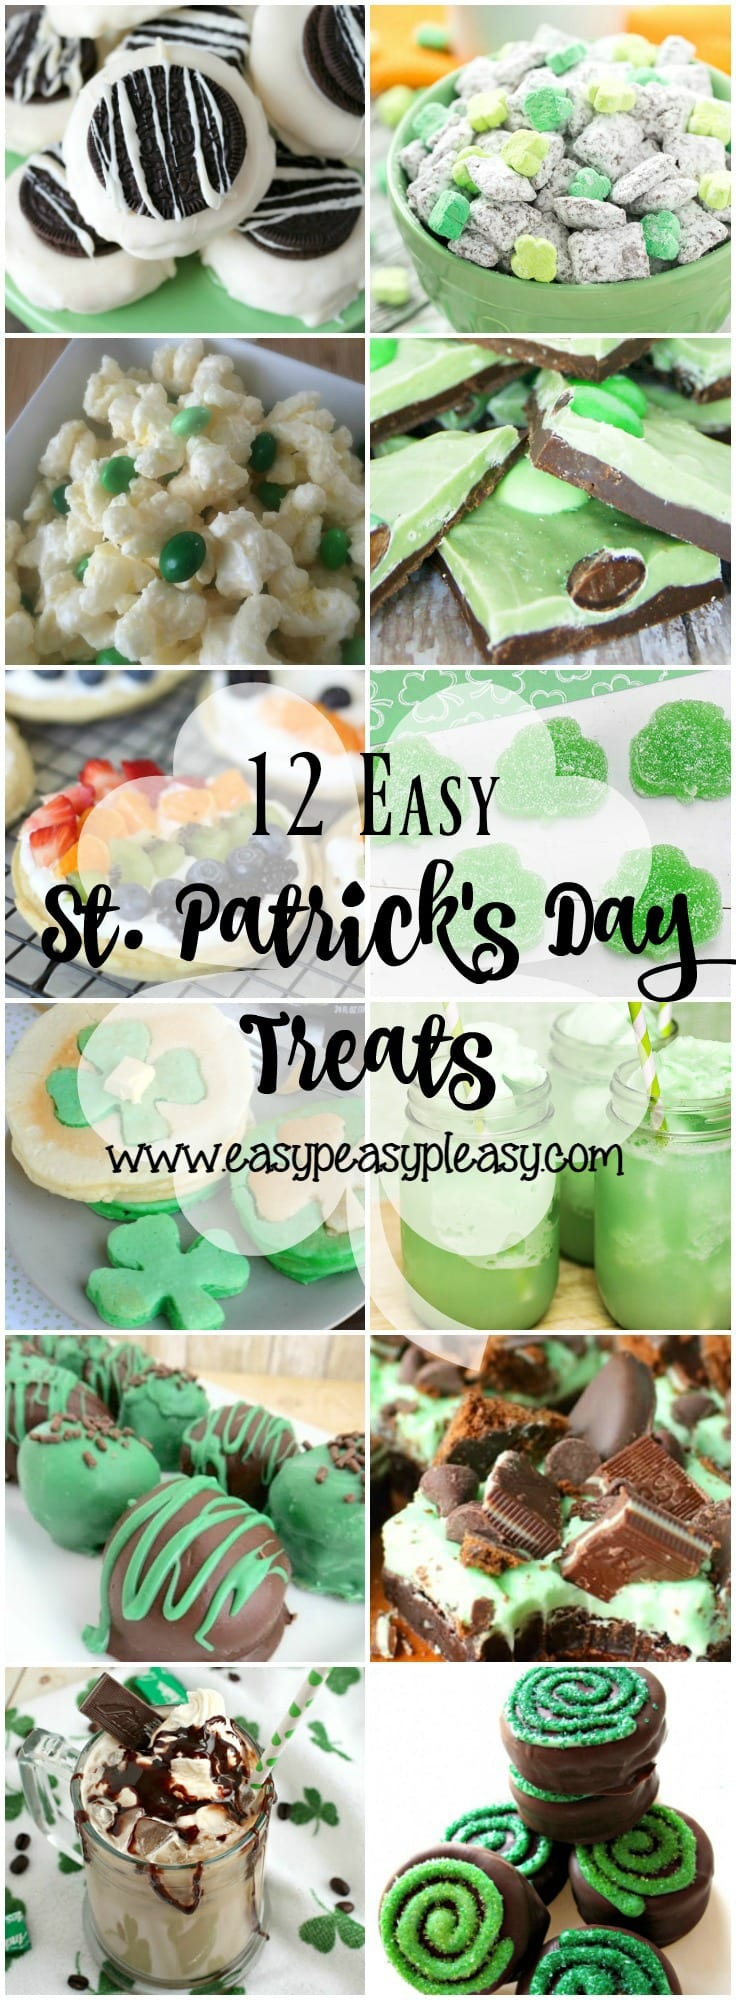 12 Easy St. Patrick's Day Treats!